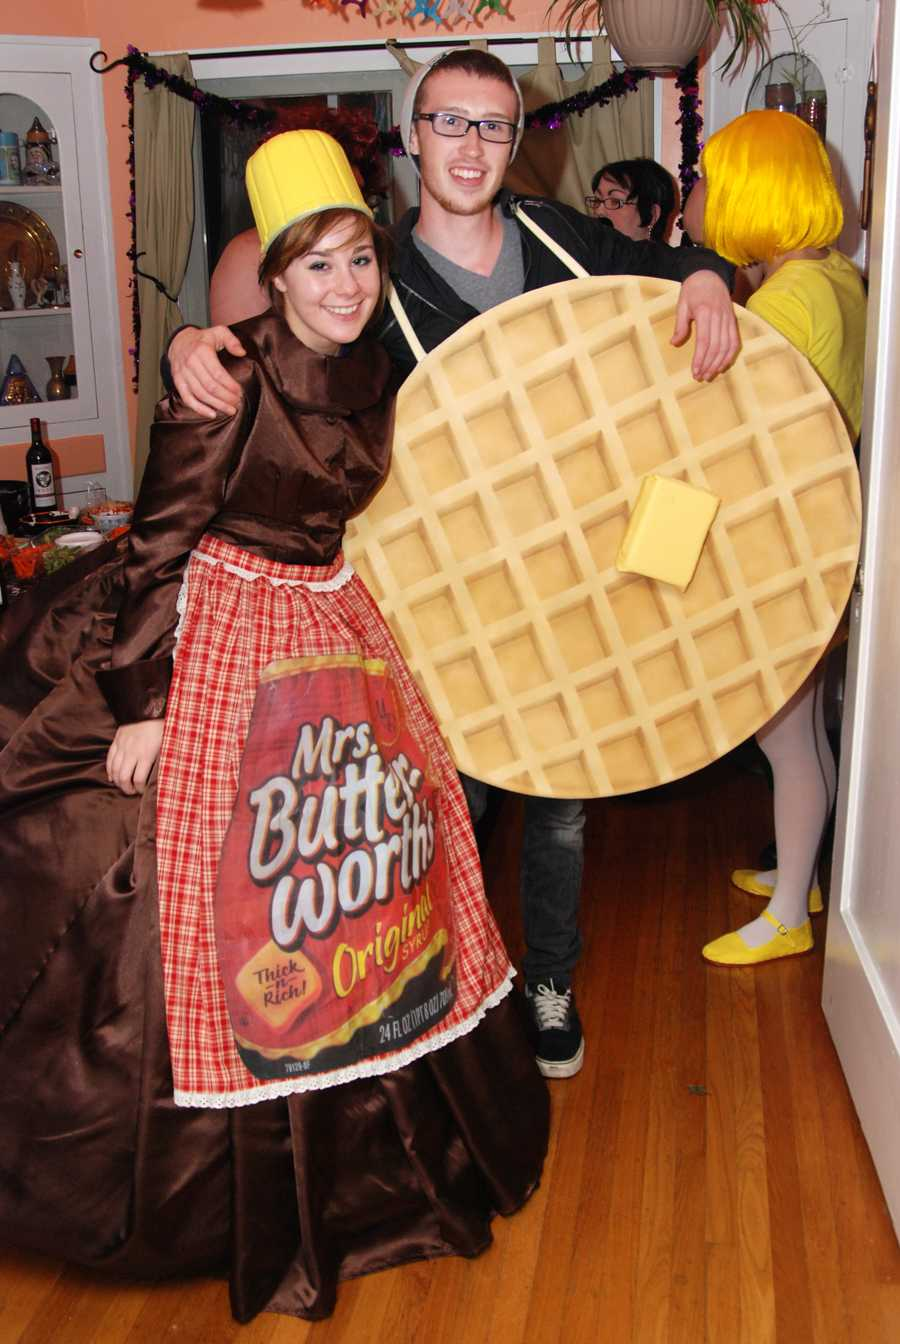 60 halloween costumes for couples best ideas for couples 60 halloween costumes for couples best ideas for couples